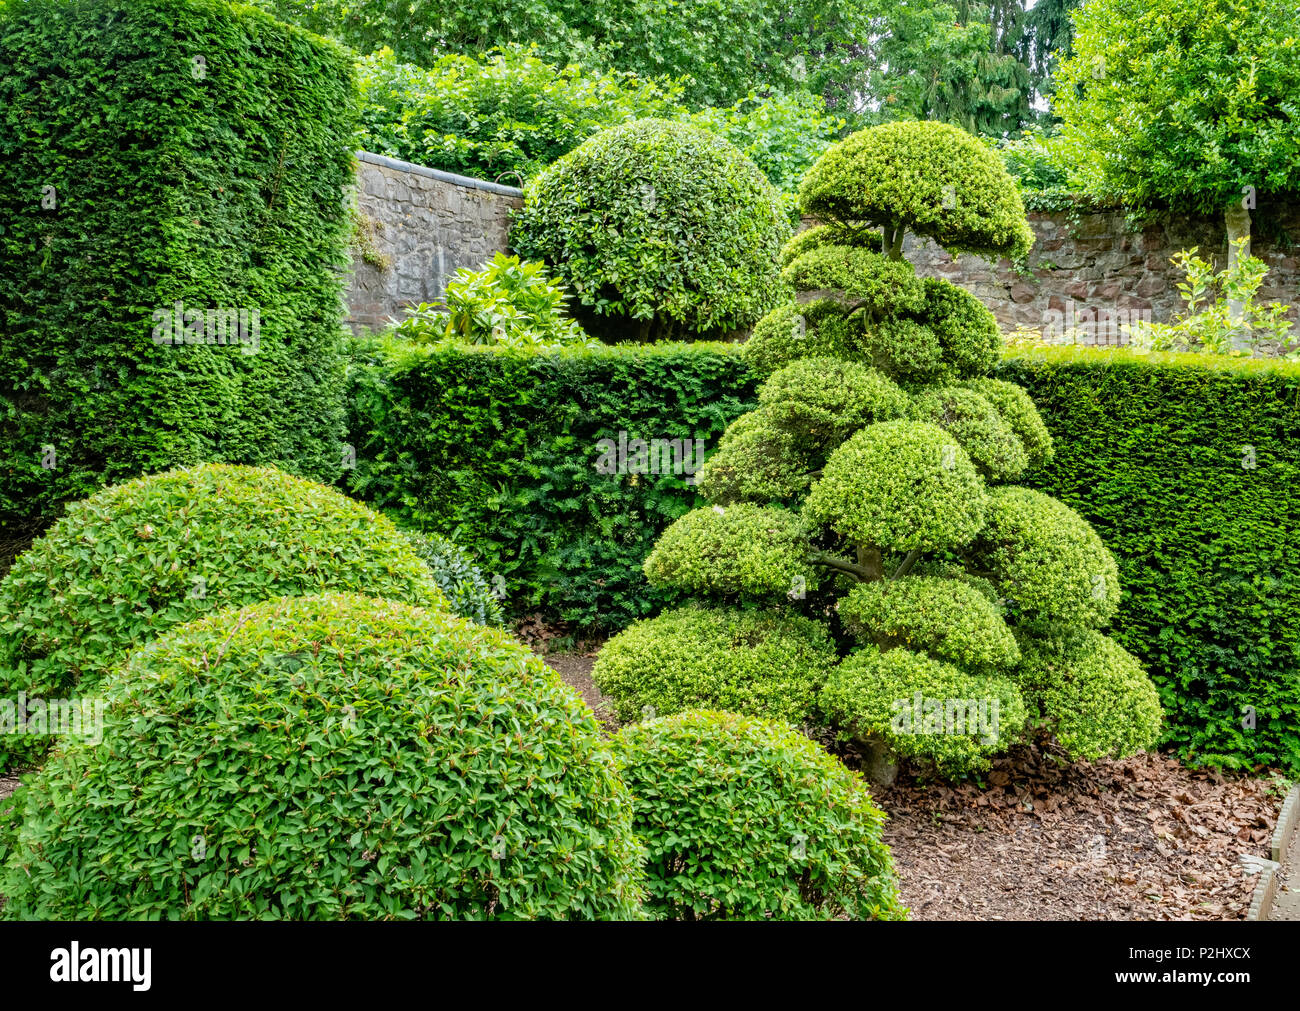 Clever use of sculptural topiary shapes in a domestic garden setting with clipped box and holly - Stock Image